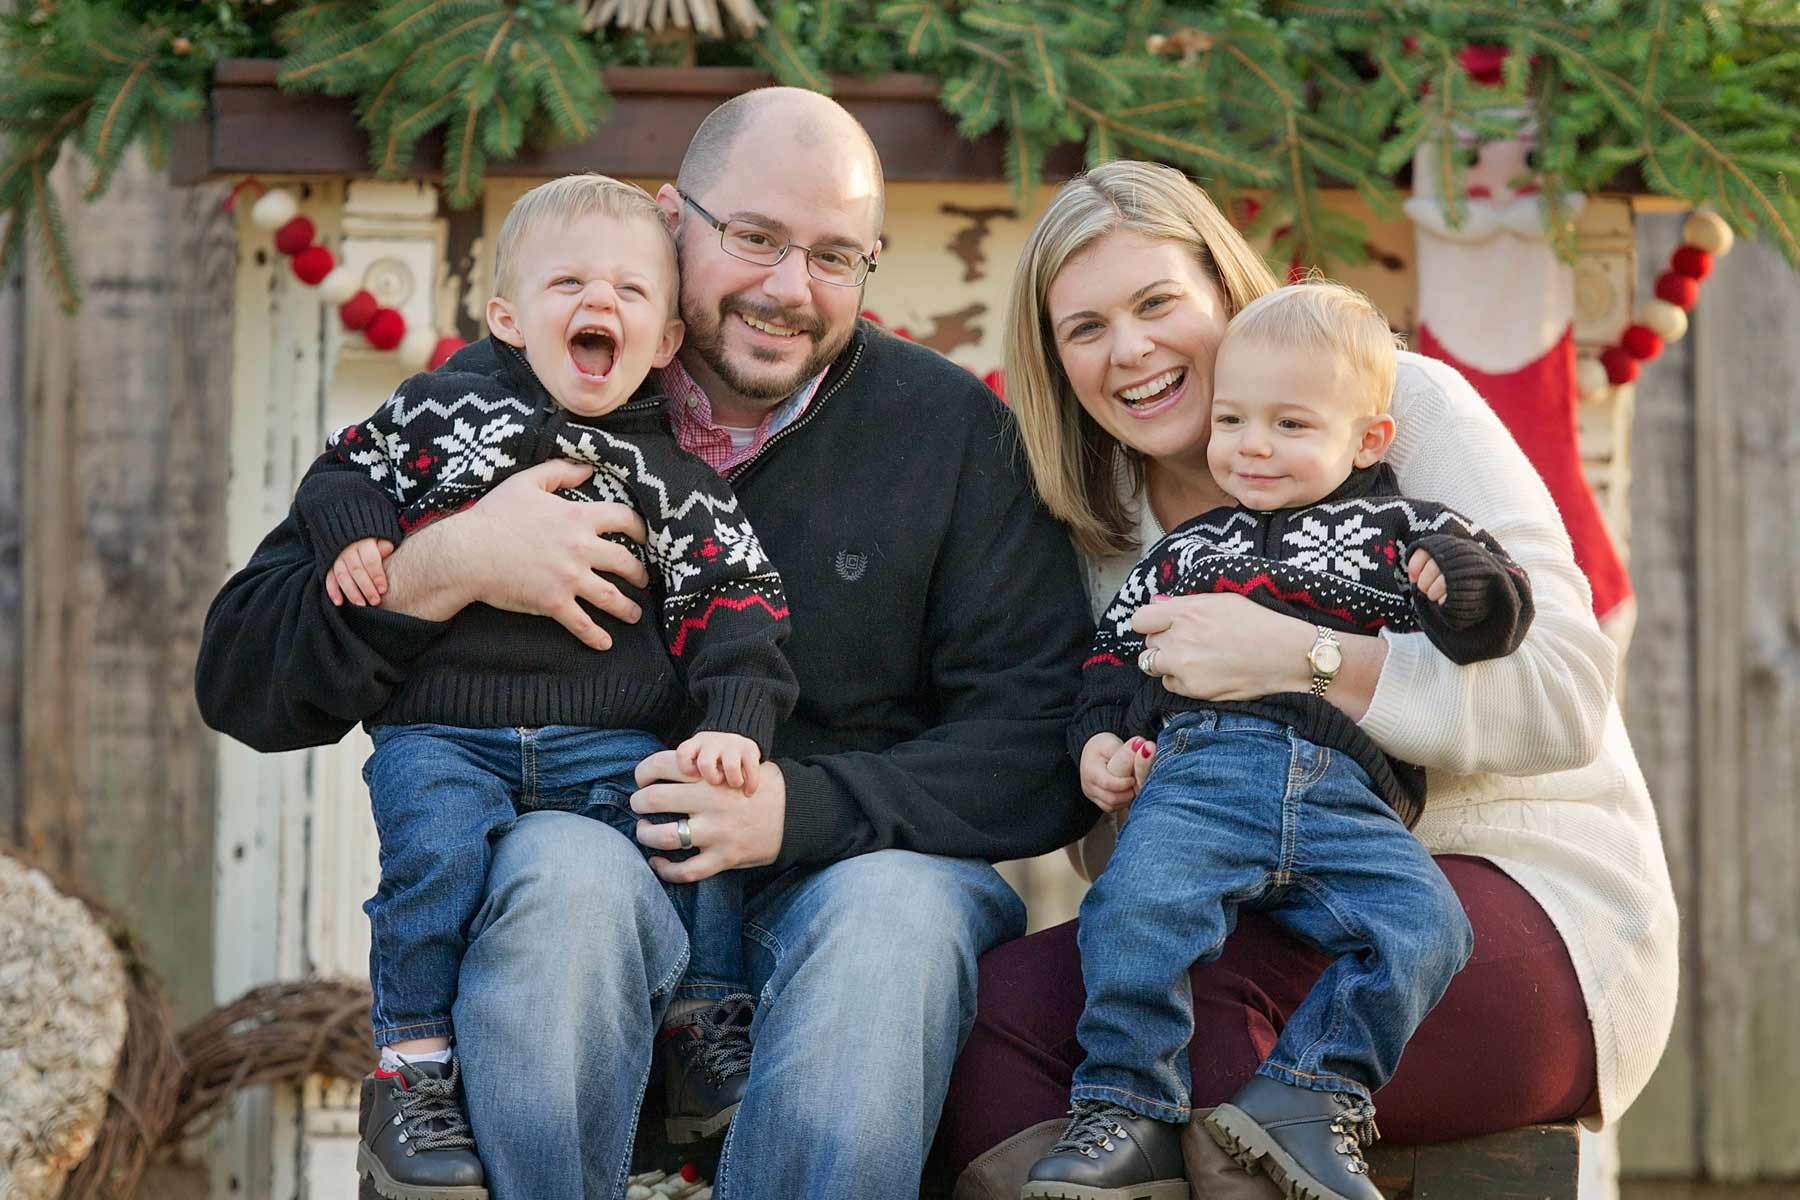 mom, dad and twin boys pose in front of holiday mantel